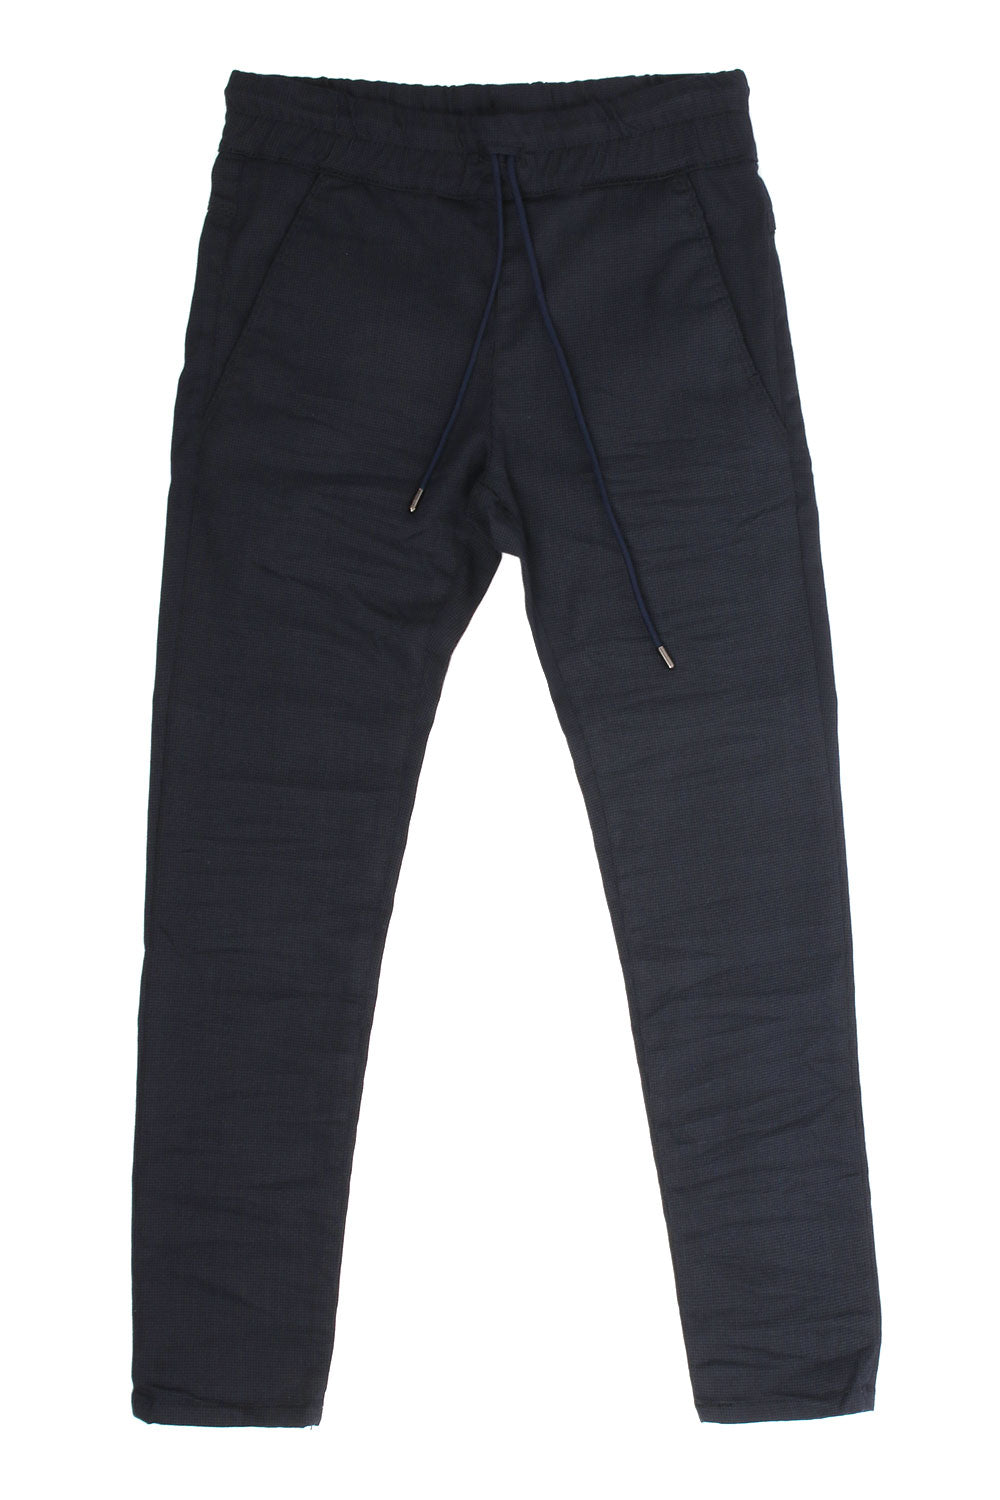 Shely Navy Cube Star Pant